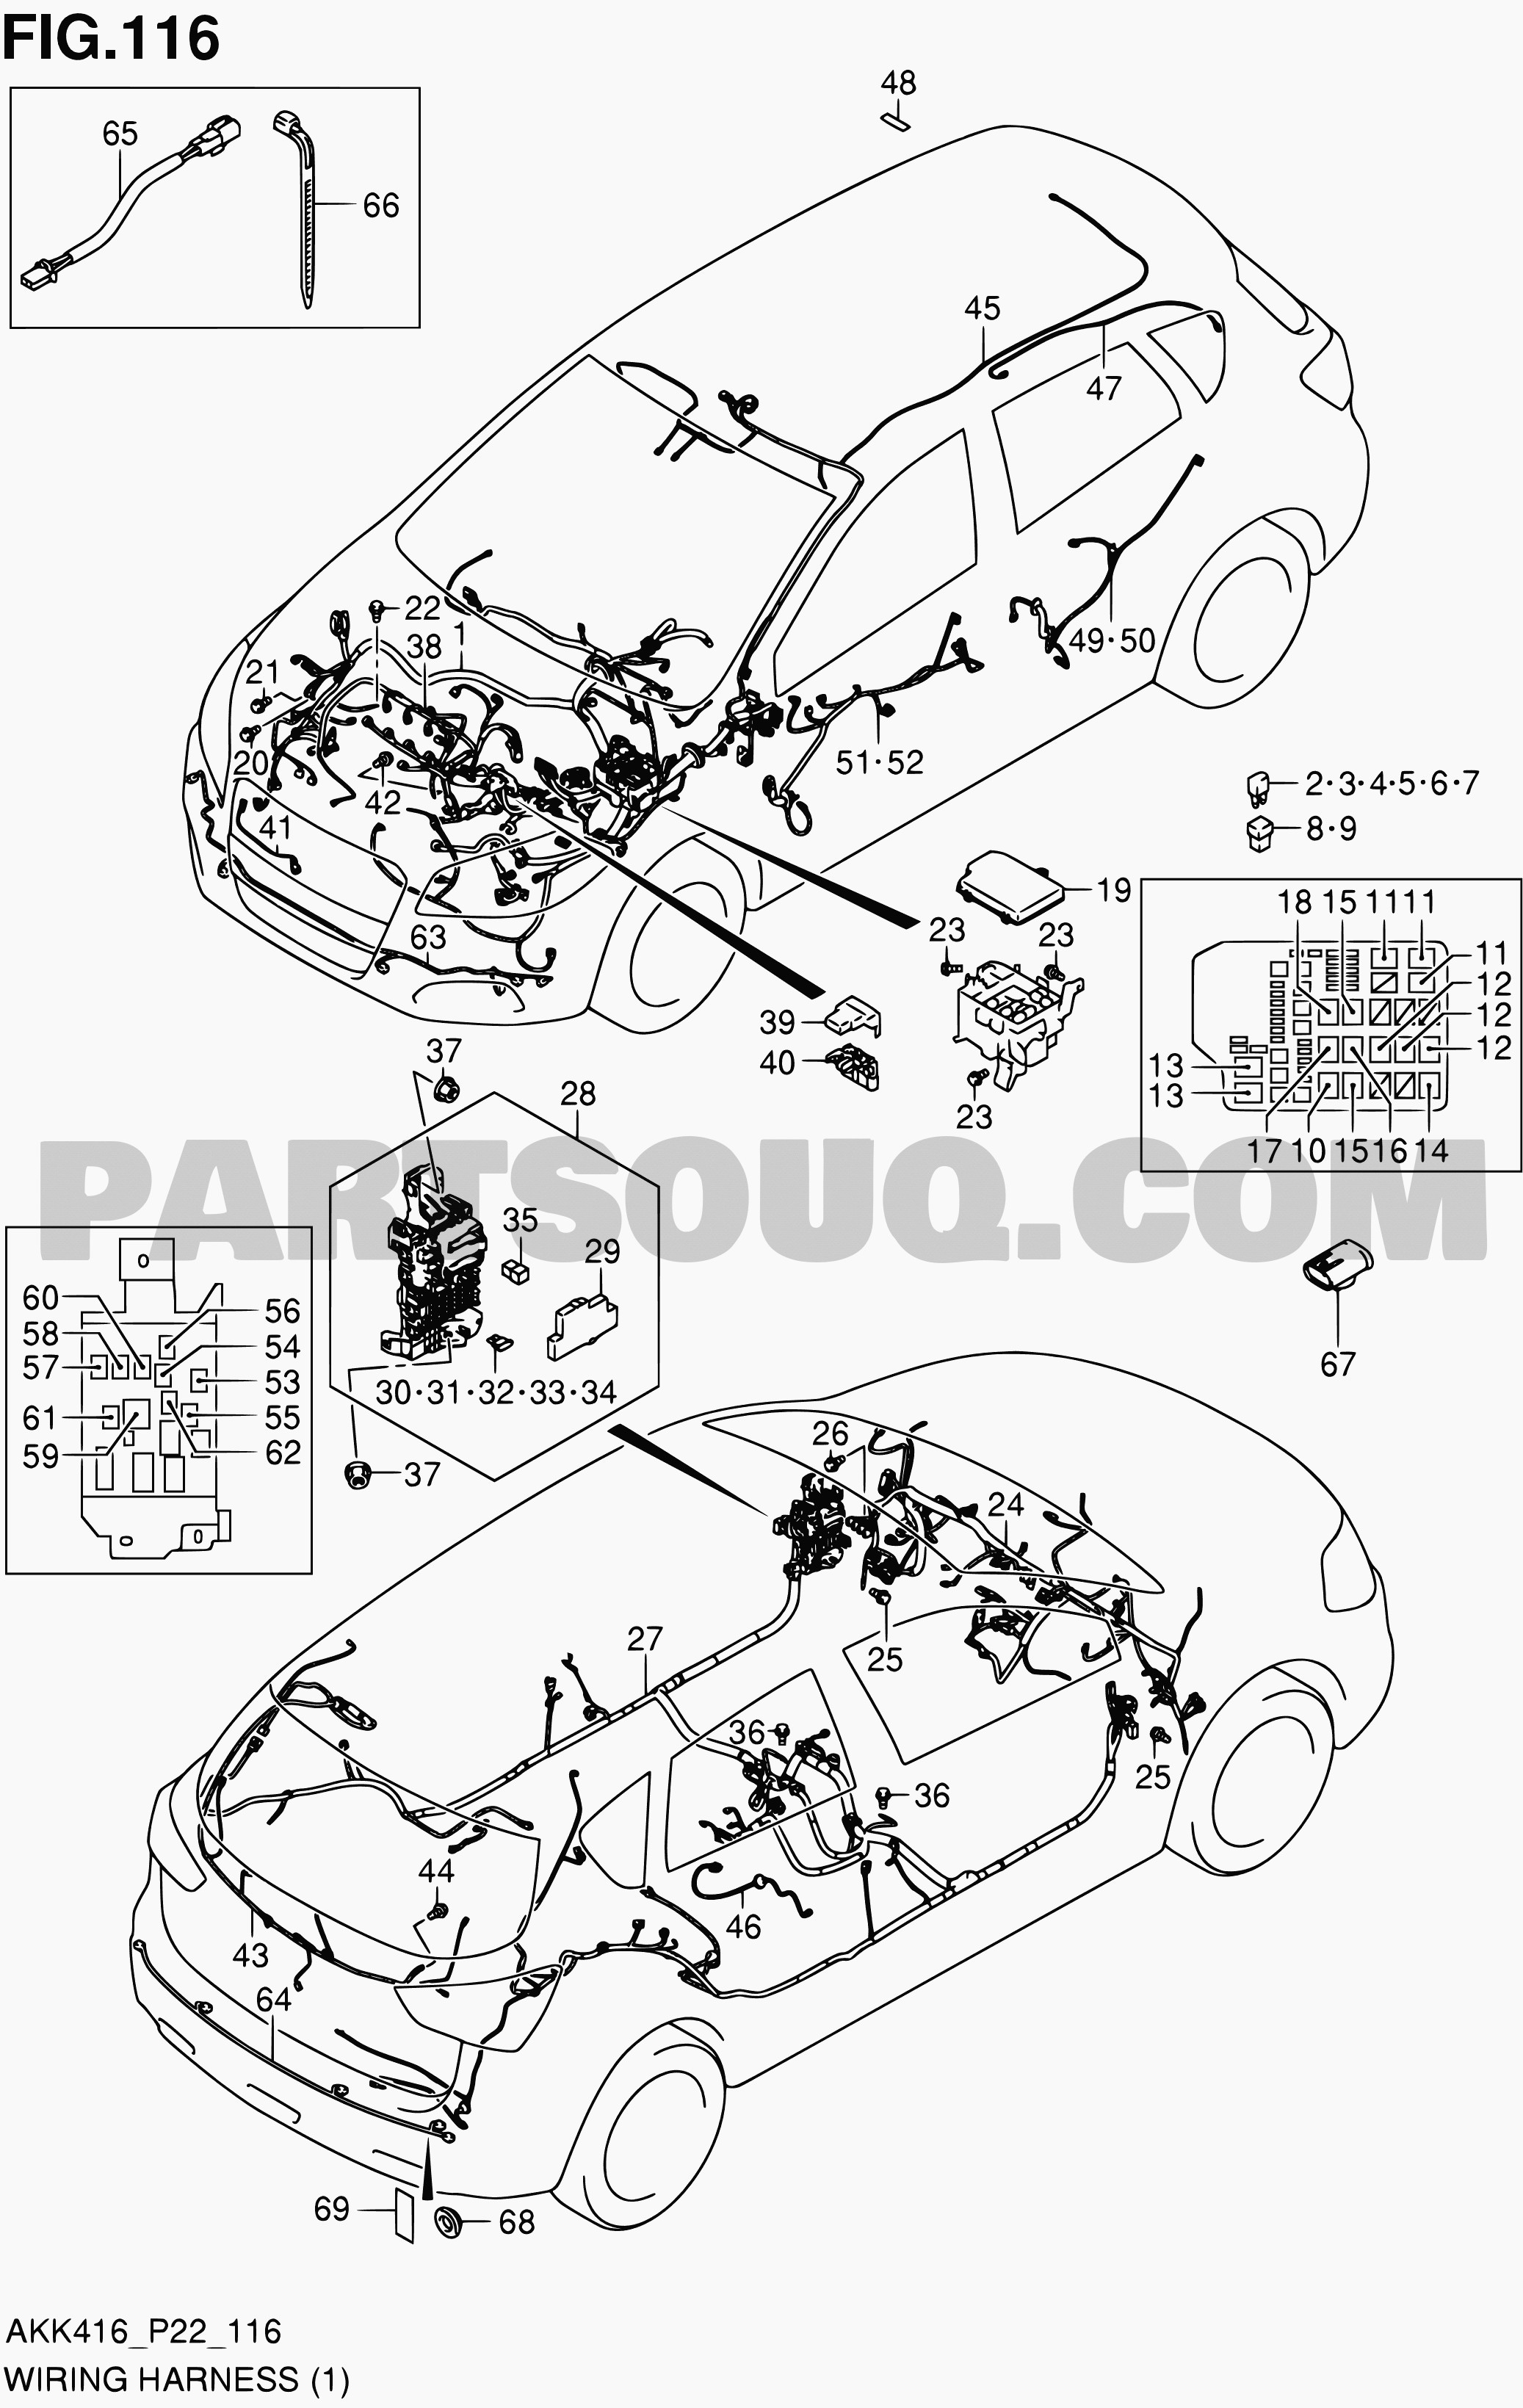 2006 Scion Tc Engine Diagram 2005 Audio Wiring Exterior Car Parts 116 Harness M16a Lhd Sx4